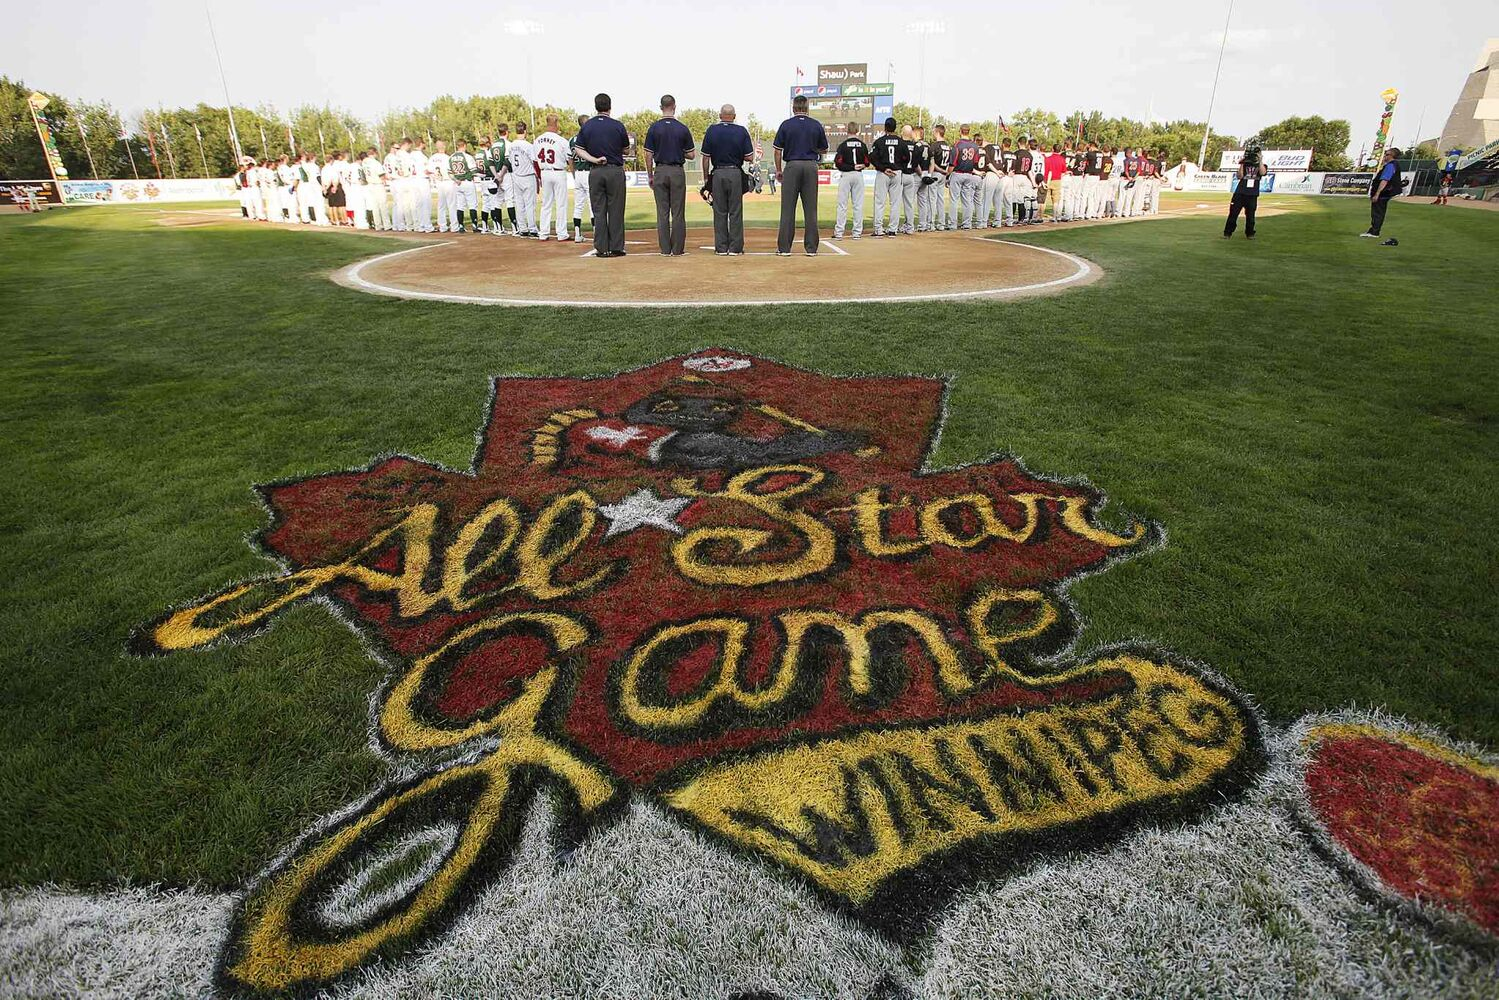 Teams line up for the singing of national anthems prior to the 2014 American Association All-Star game in Winnipeg Tuesday. (John Woods / Winnipeg Free Press)